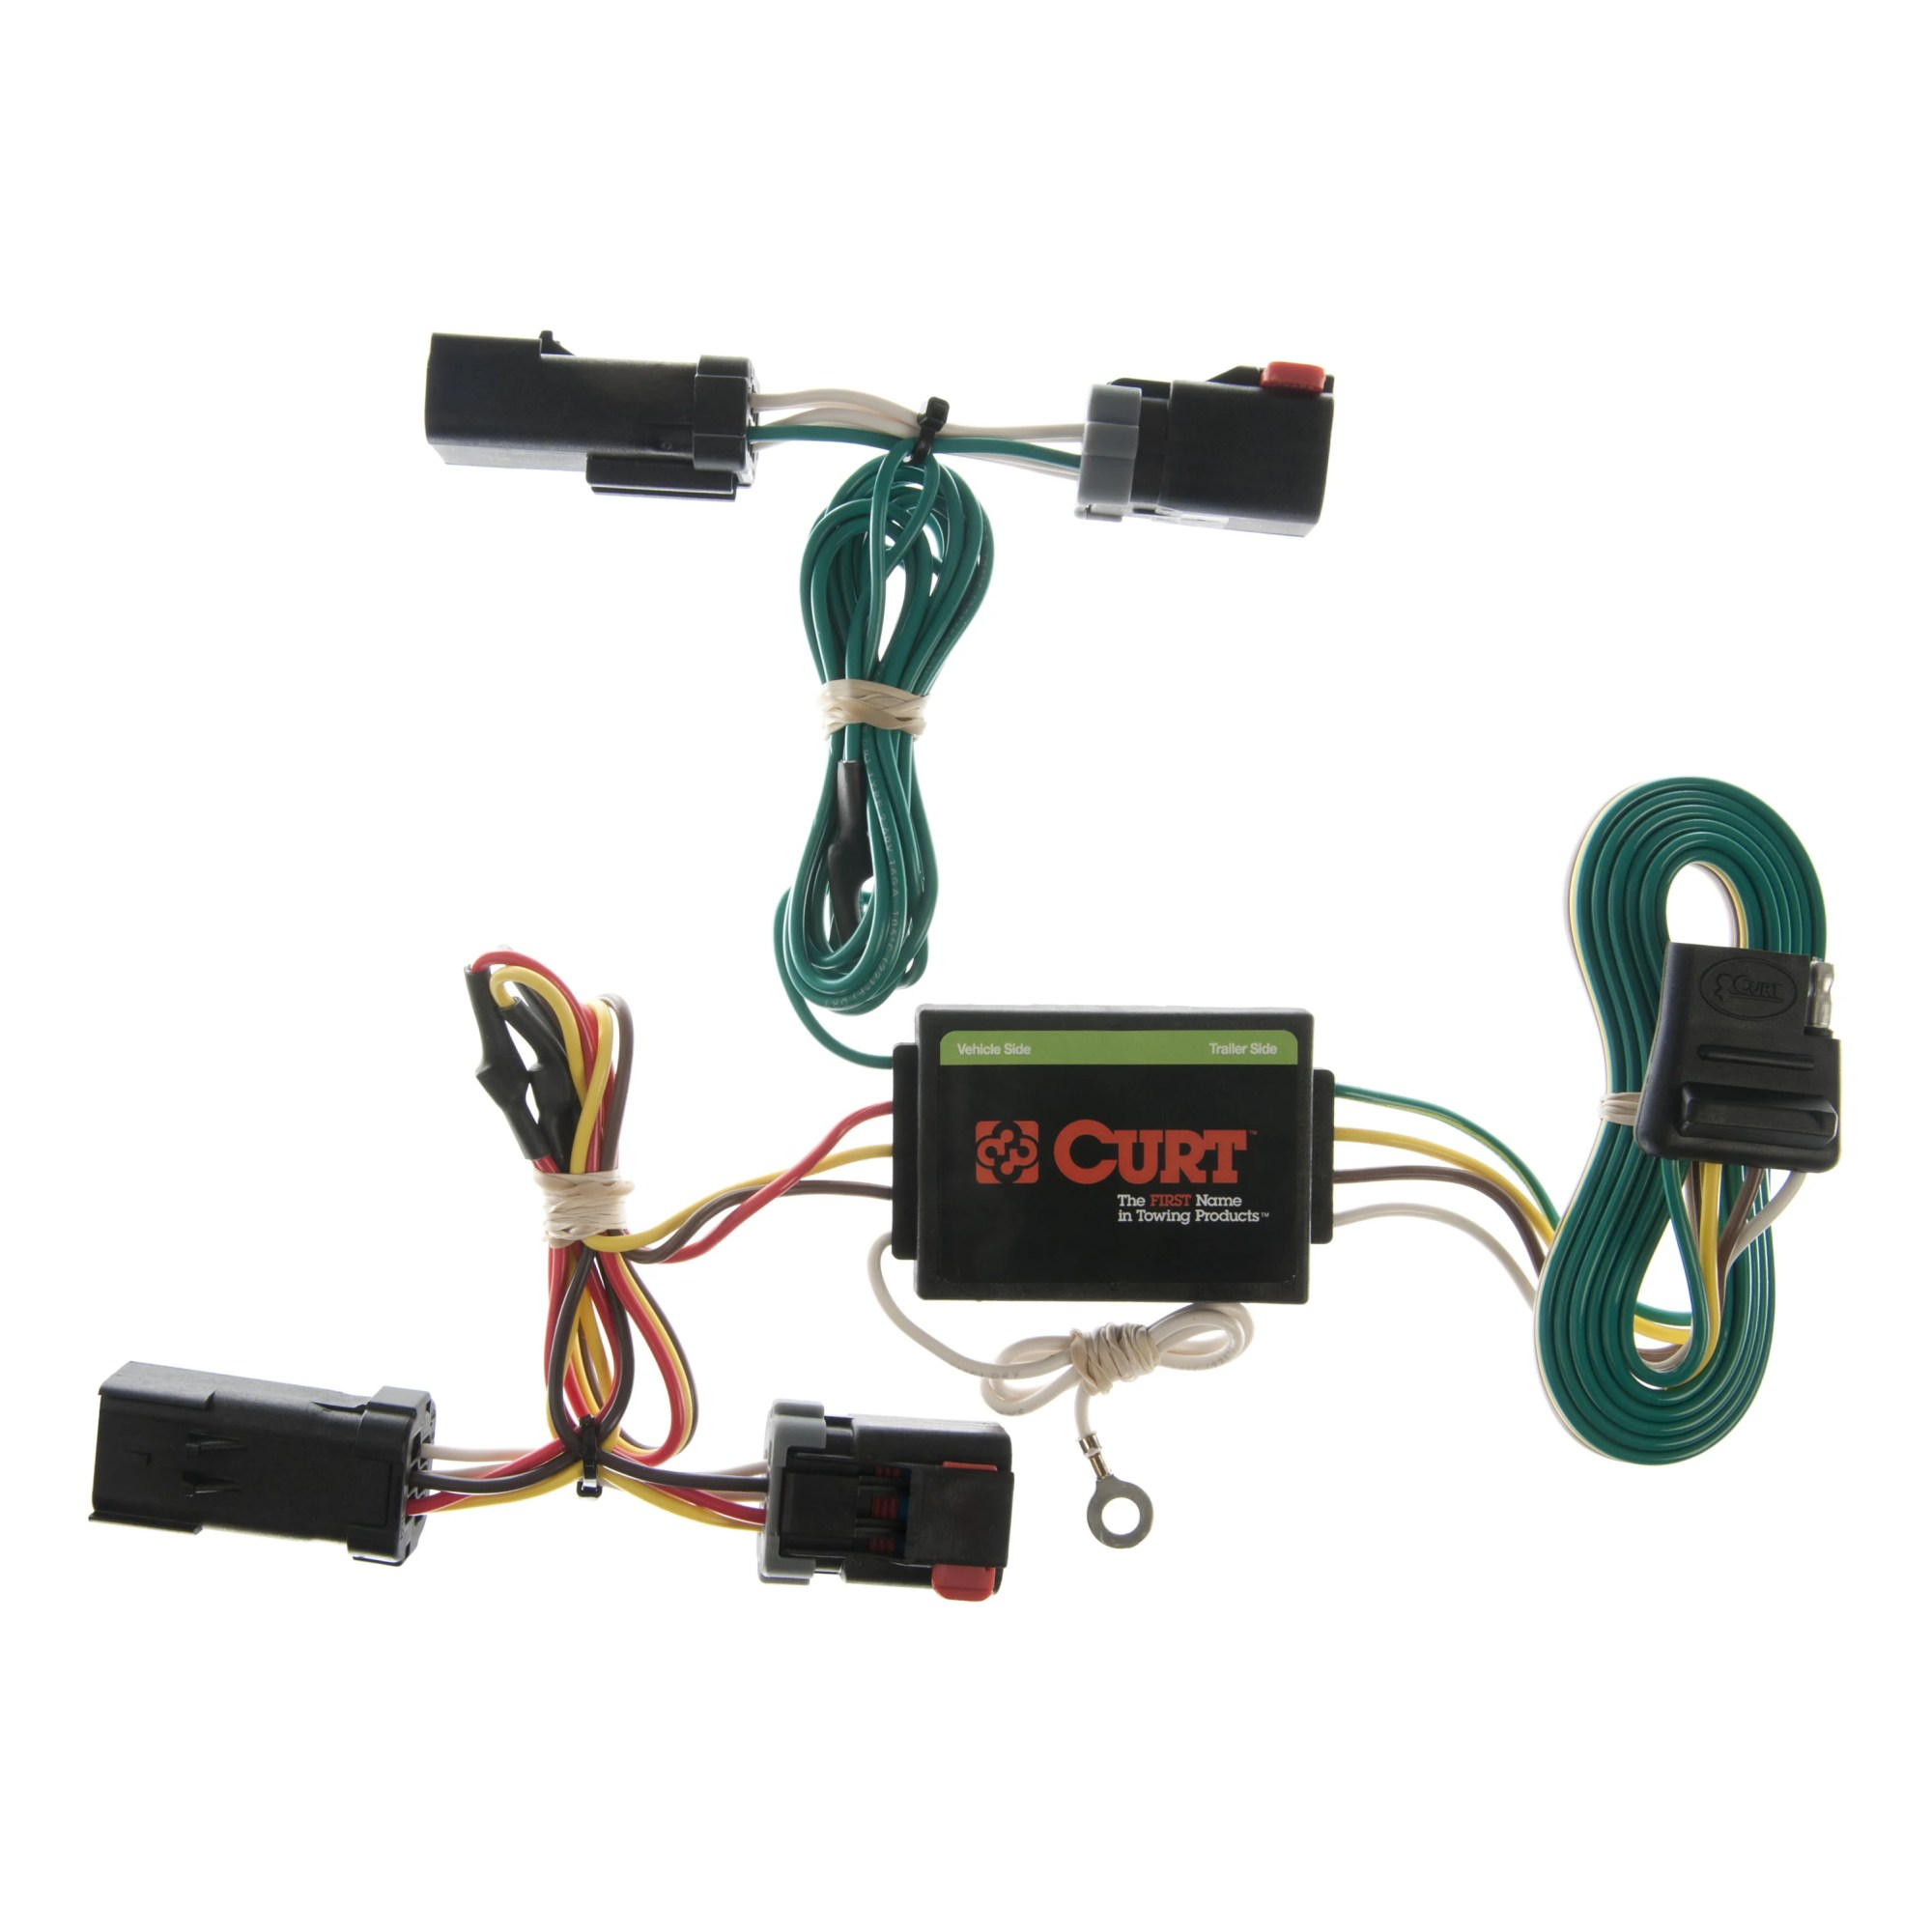 hight resolution of curt custom vehicle to trailer wiring harness 55382 for 2002 2007 jeep liberty